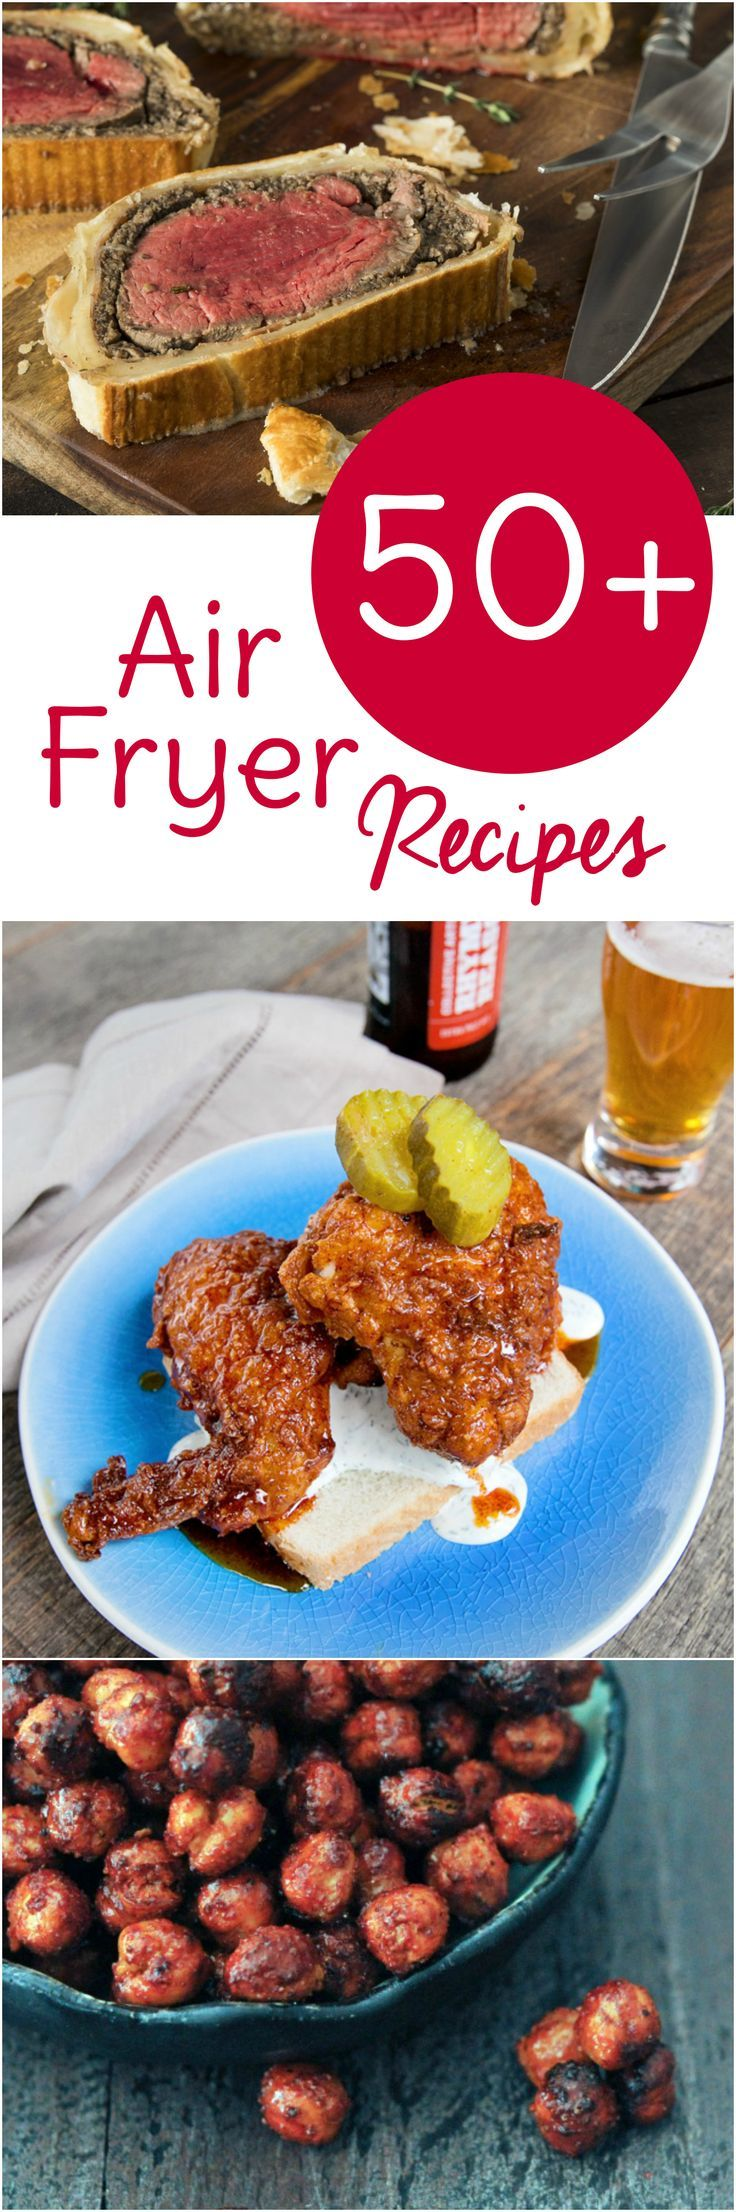 Break out your Airfryer and get cooking with these 50 free Air Fryer recipes broken down by category. Air Fryer Beef, Pork, Chicken, Seafood, Meatless, and Dessert recipes! #airfryer #dinner